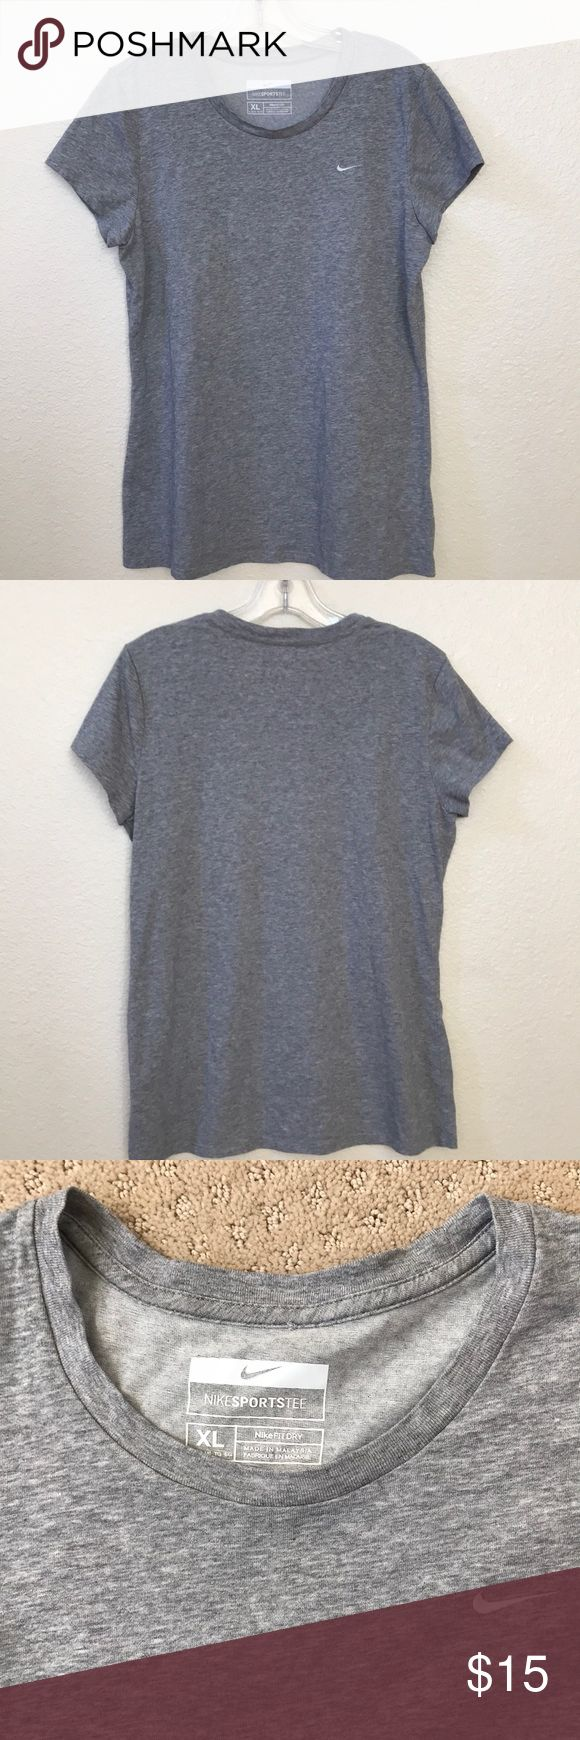 EUC Nike FitDry cap sleeved Sports Tee ladies XL Nike FitDry heathered gray cap sleeved Sports Tee ladies XL in excellent preloved condition, worn and washed once. See photos for excellent like-new condition. Treat yourself to a timeless classic. Thanks for shopping my closet. 💕 Nike Tops Tees - Short Sleeve